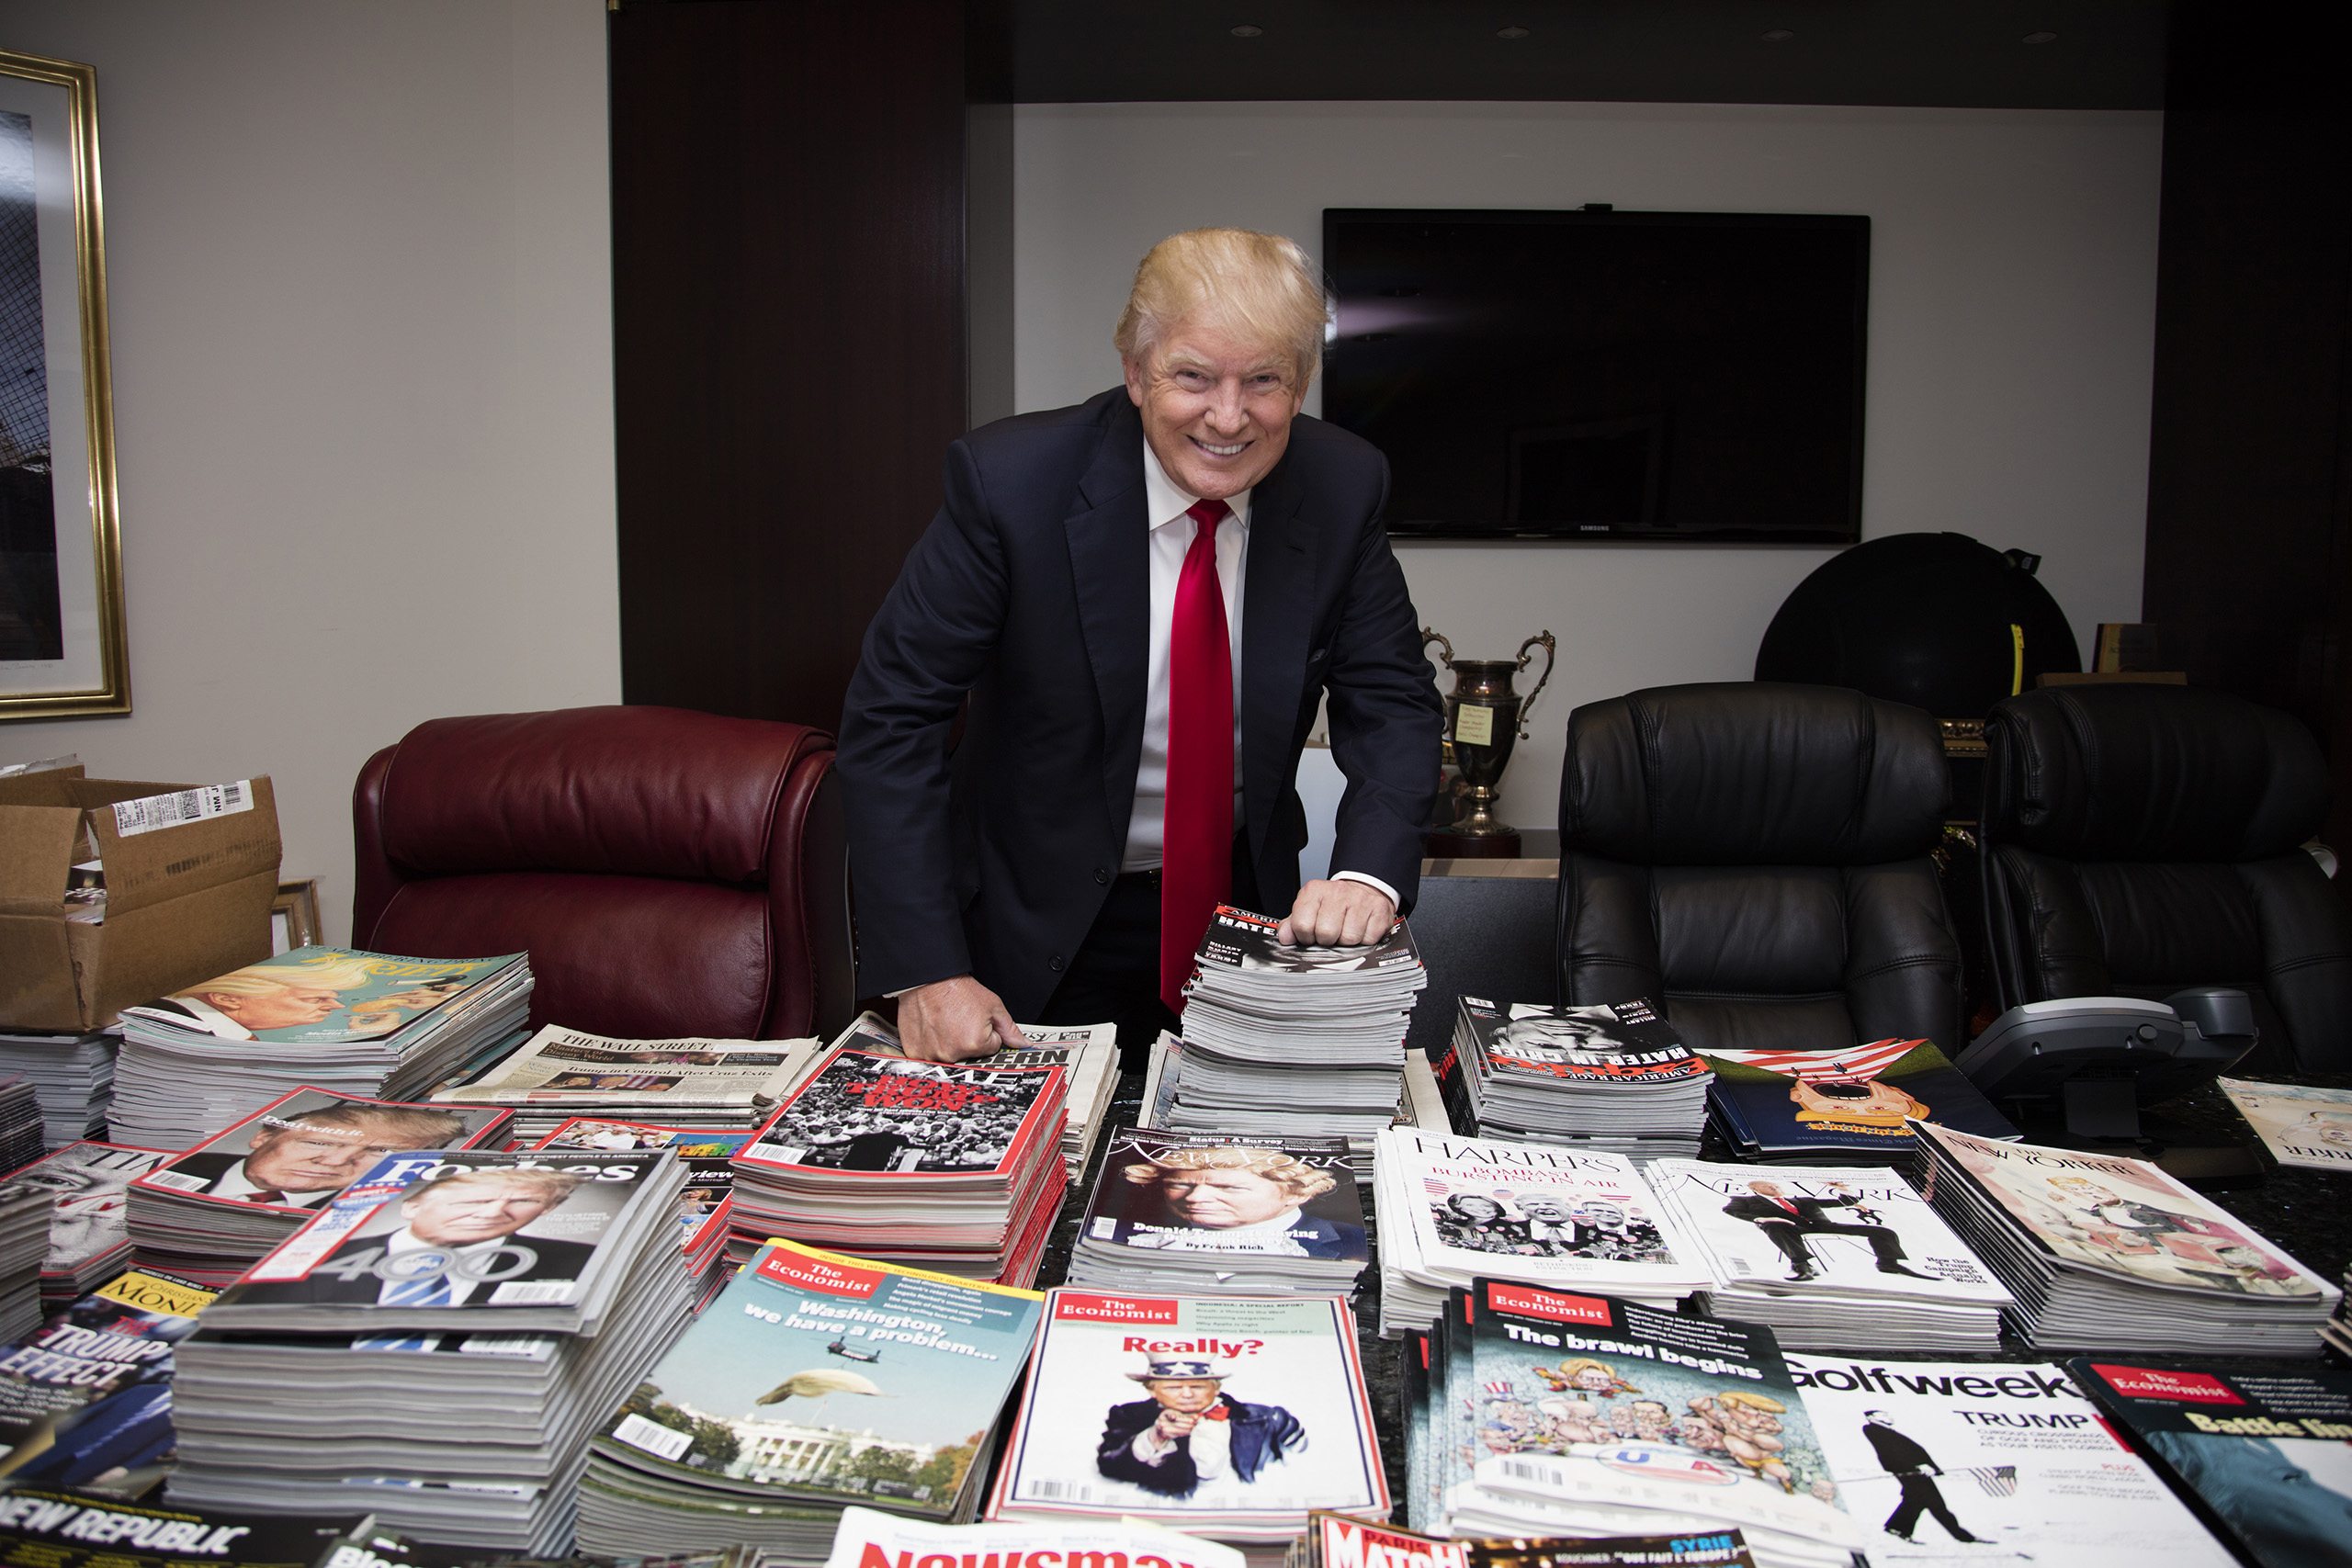 Donald Trump in a conference room, where he's storing his archive of press and memorabilia, on July 11, 2016.